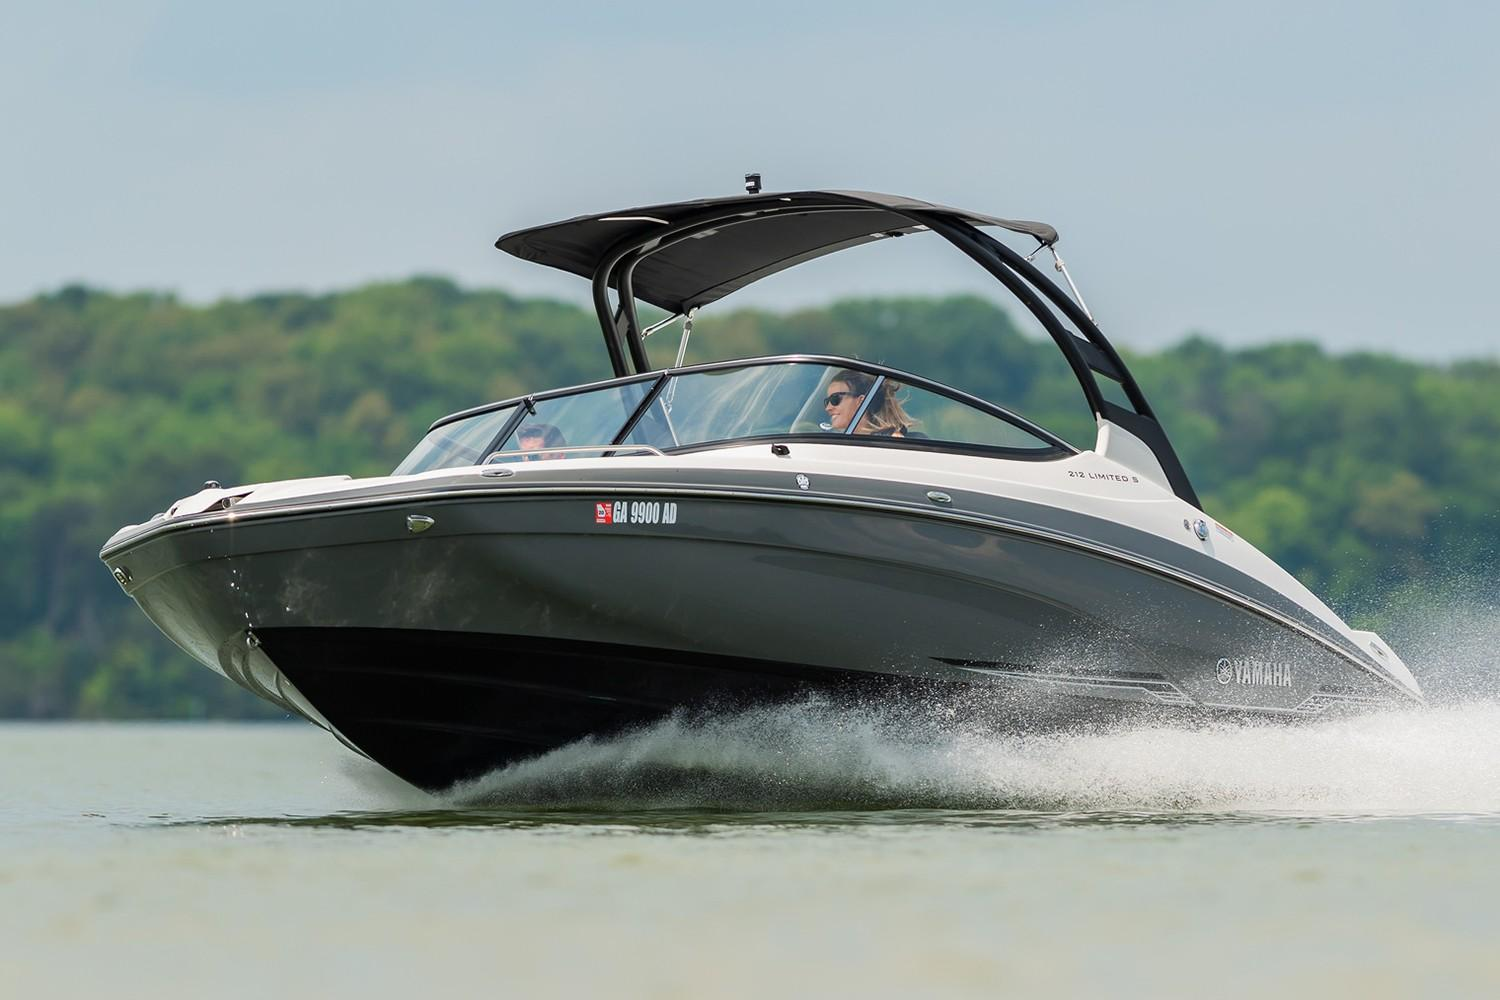 2019 Yamaha 212 Limited S in Gulfport, Mississippi - Photo 1